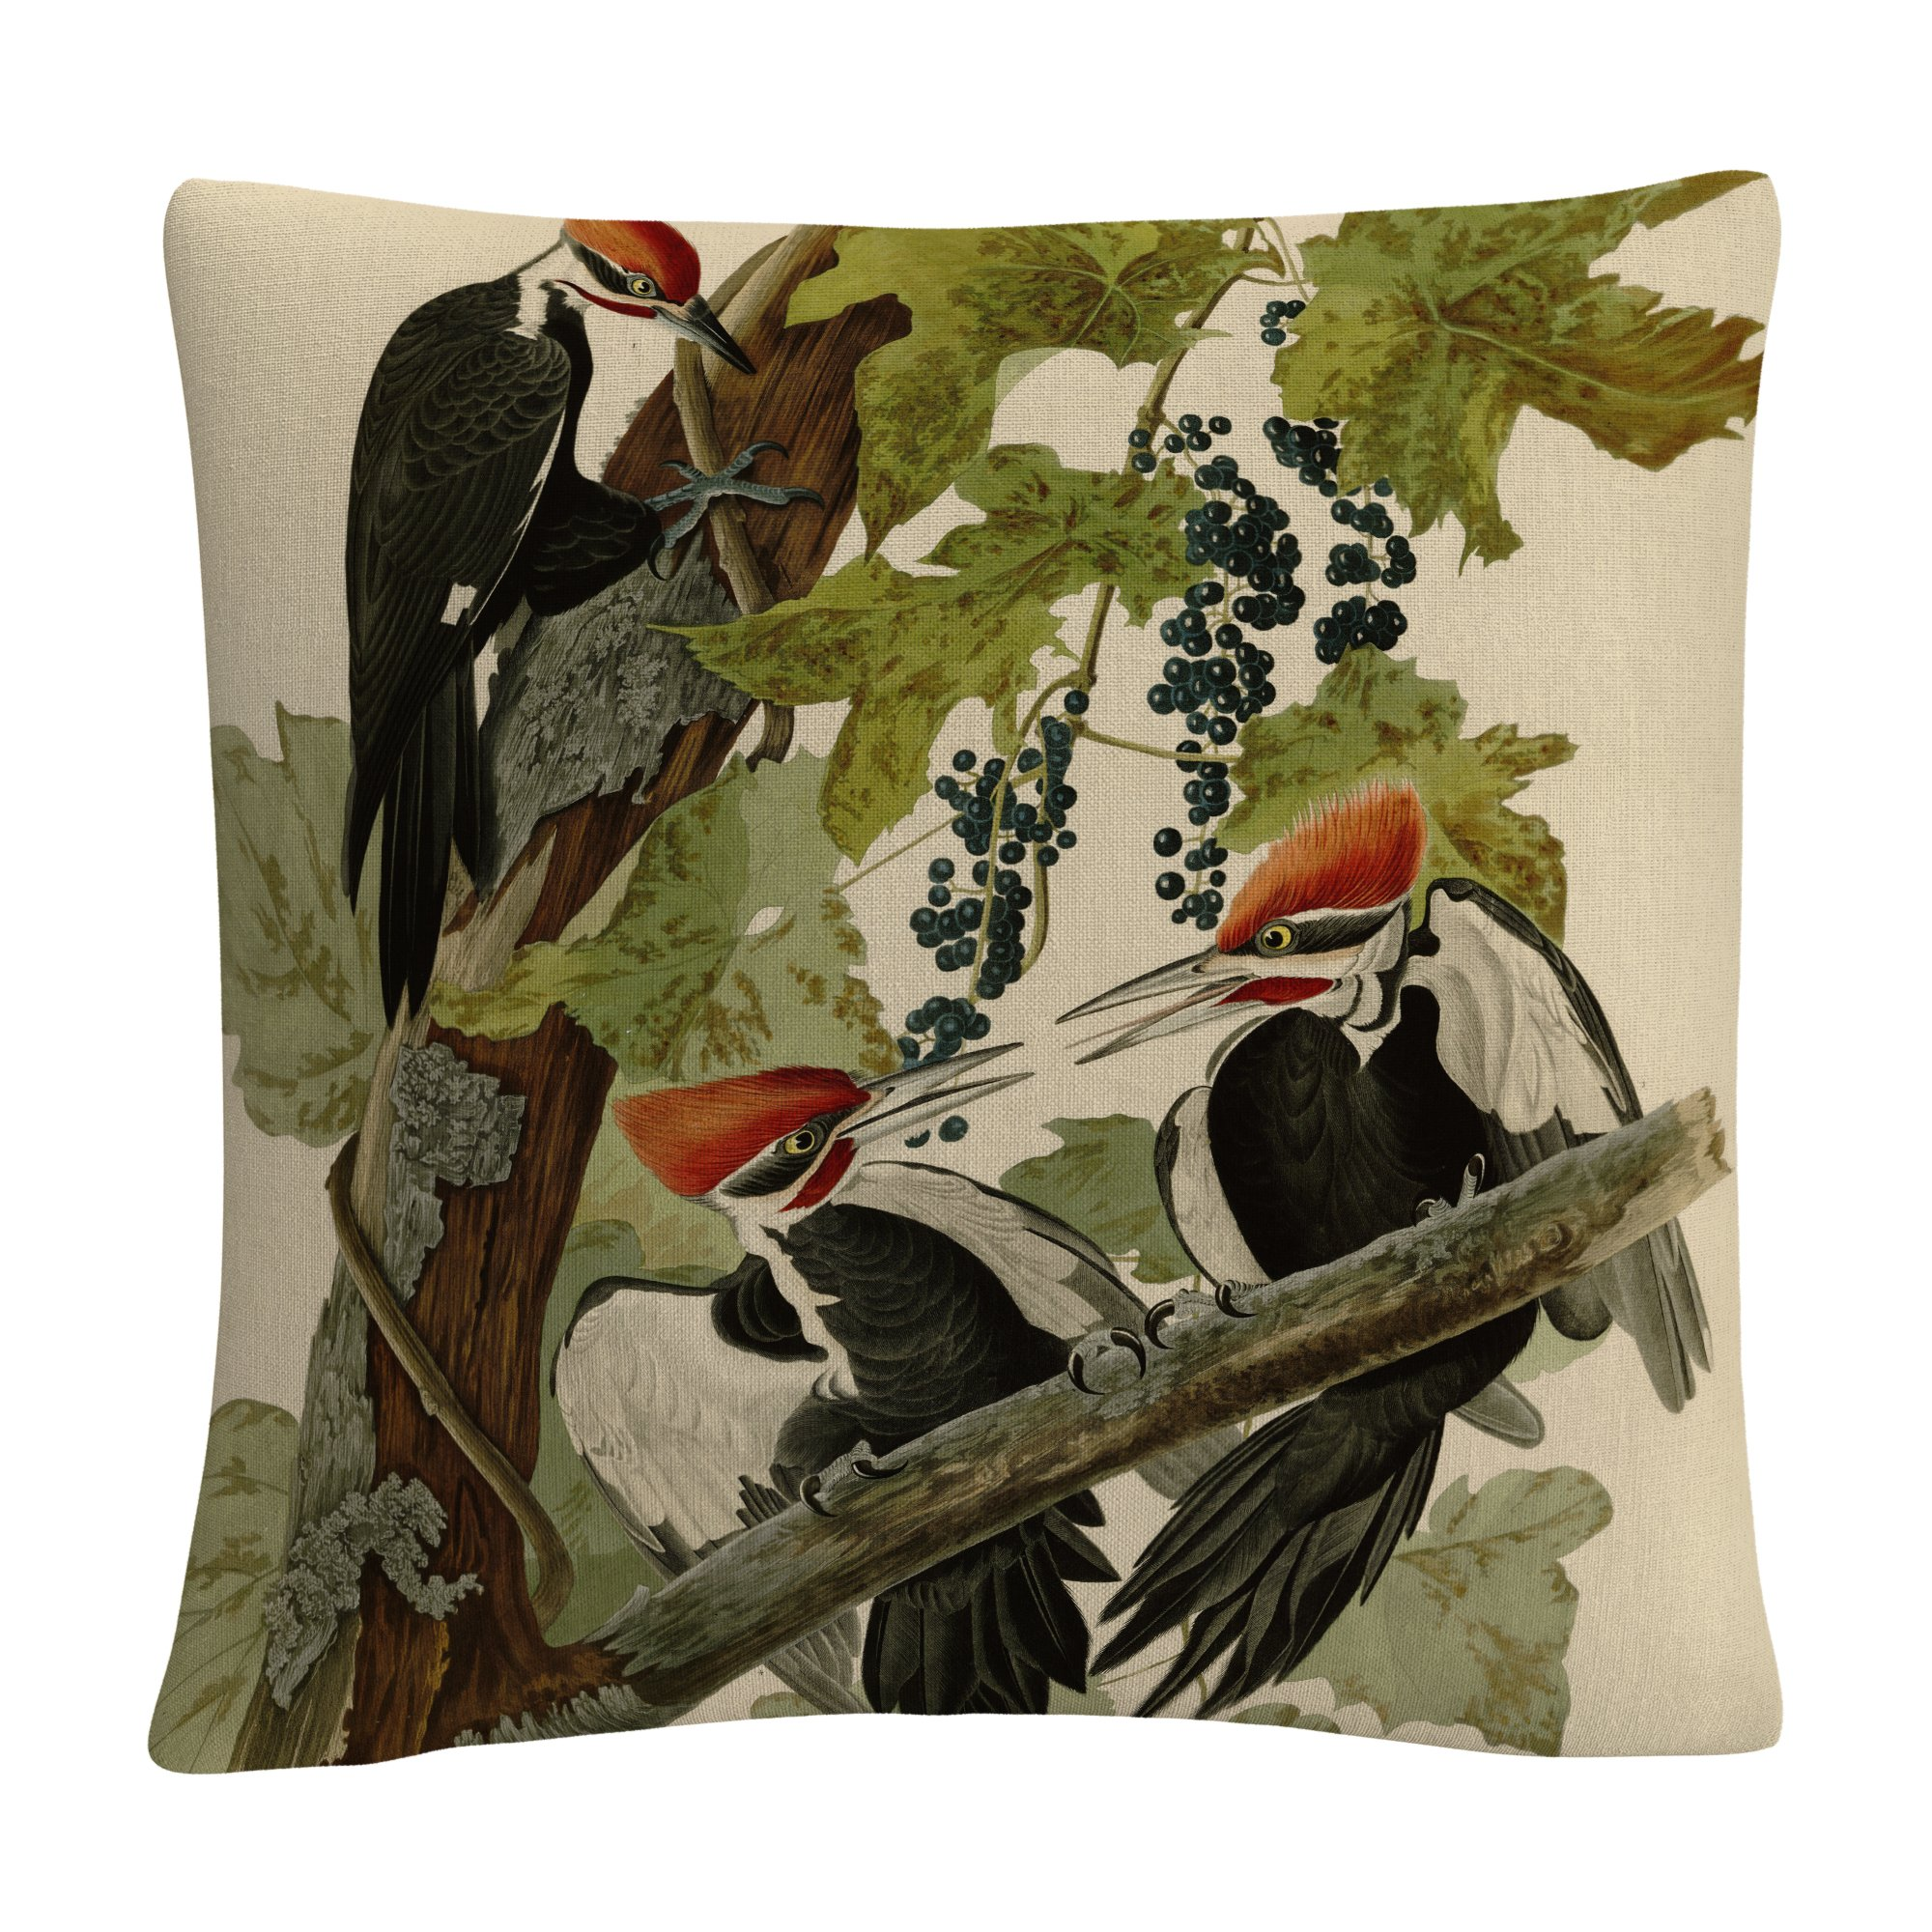 Trademark Fine Art BL01290-PIL1616 John James Audubon 'Pileated Woodpeckers Decorative Throw Pillow, 16'' x 16'', Multicolor by Trademark Fine Art (Image #1)